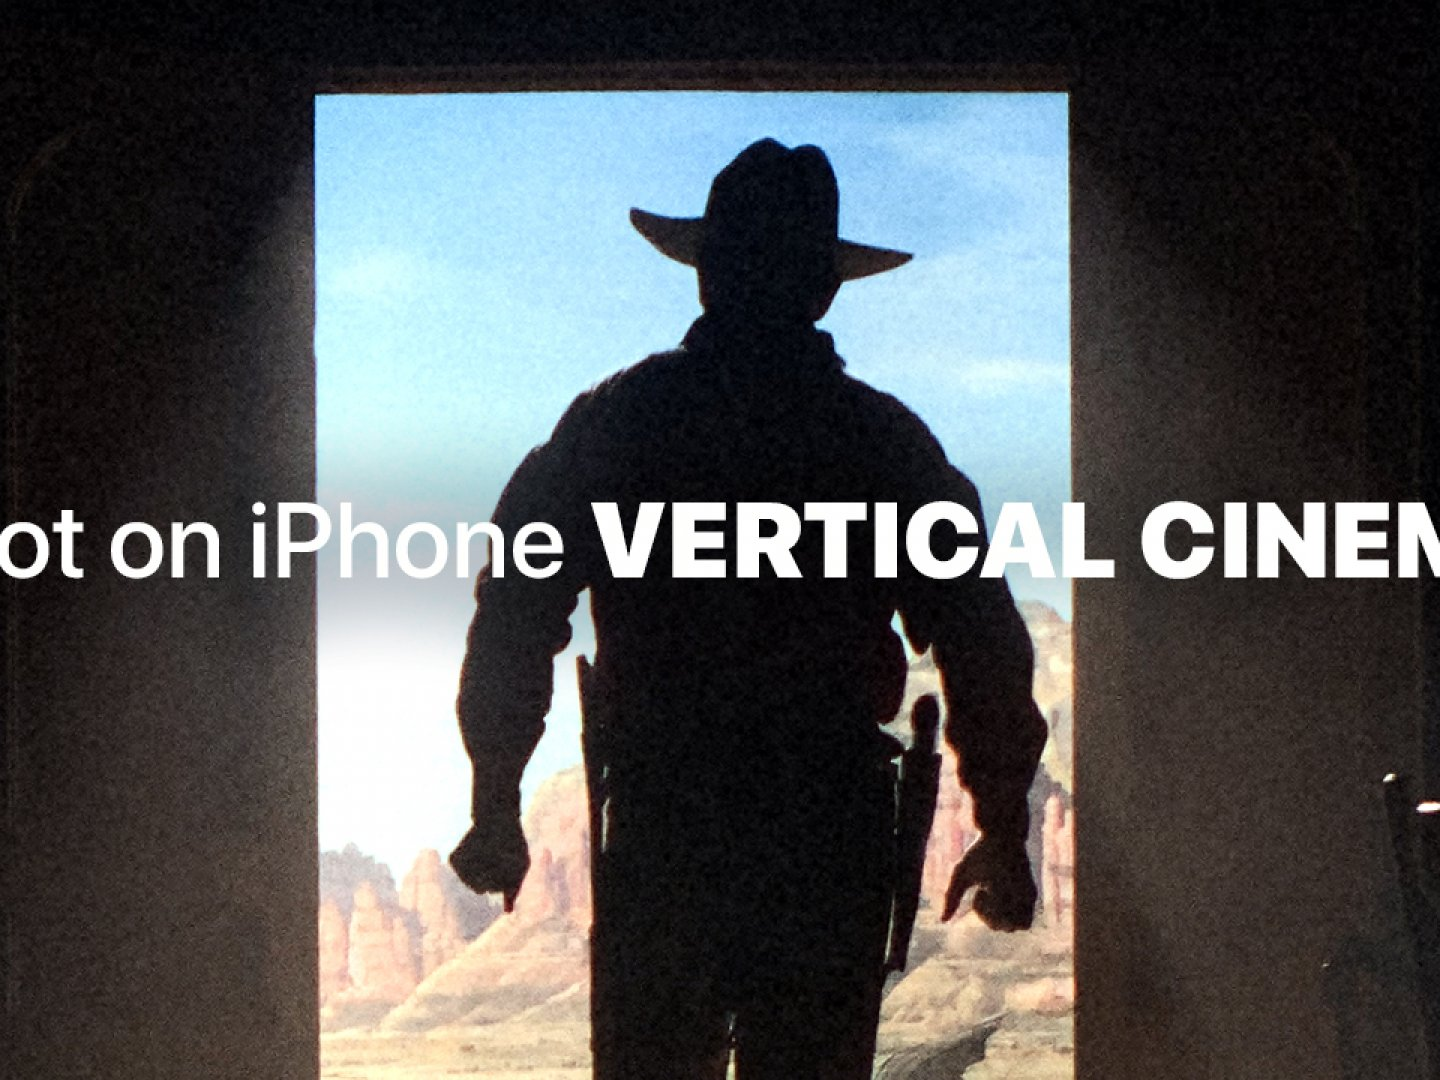 Shot on iPhone by Damien Chazelle—Vertical Cinema Thumbnail